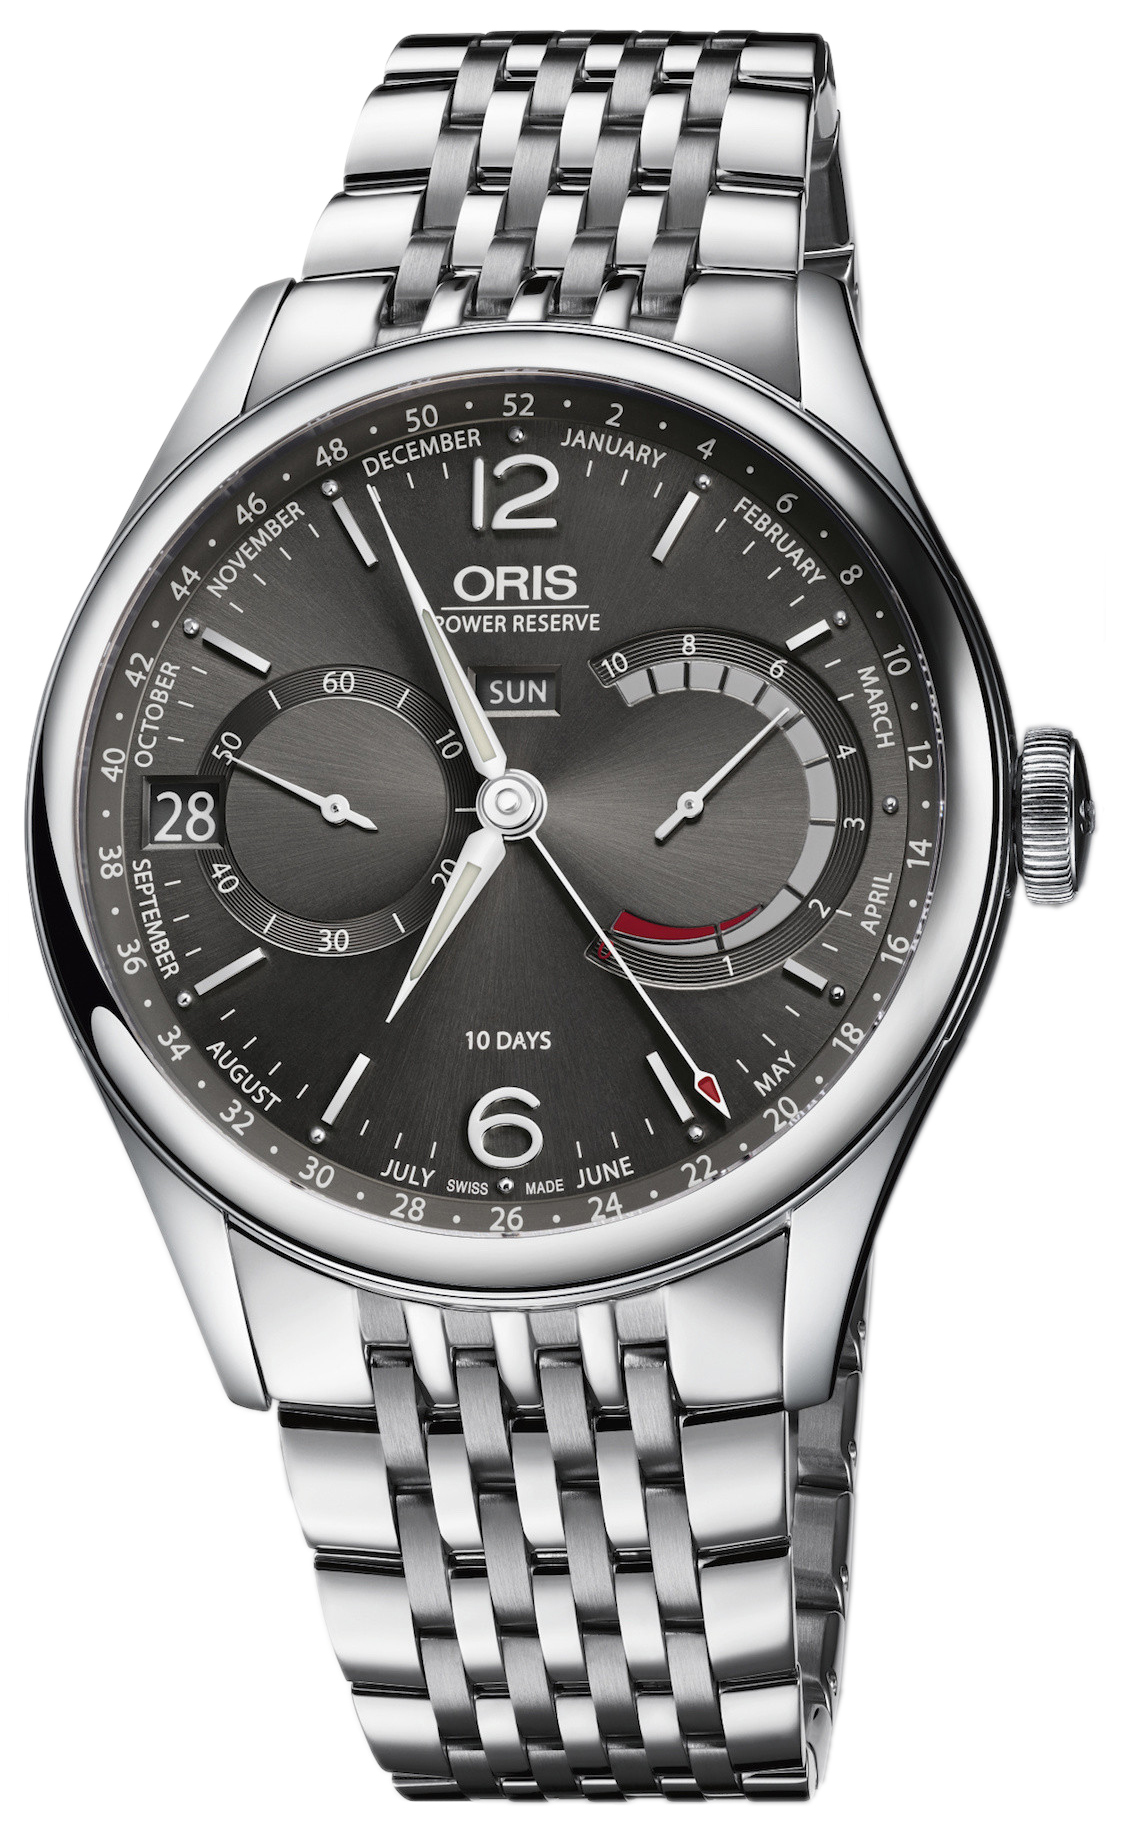 Oris Culture Herrklocka 01 113 7738 4063-Set 8 23 79PS Grå/Stål Ø43 mm - Oris